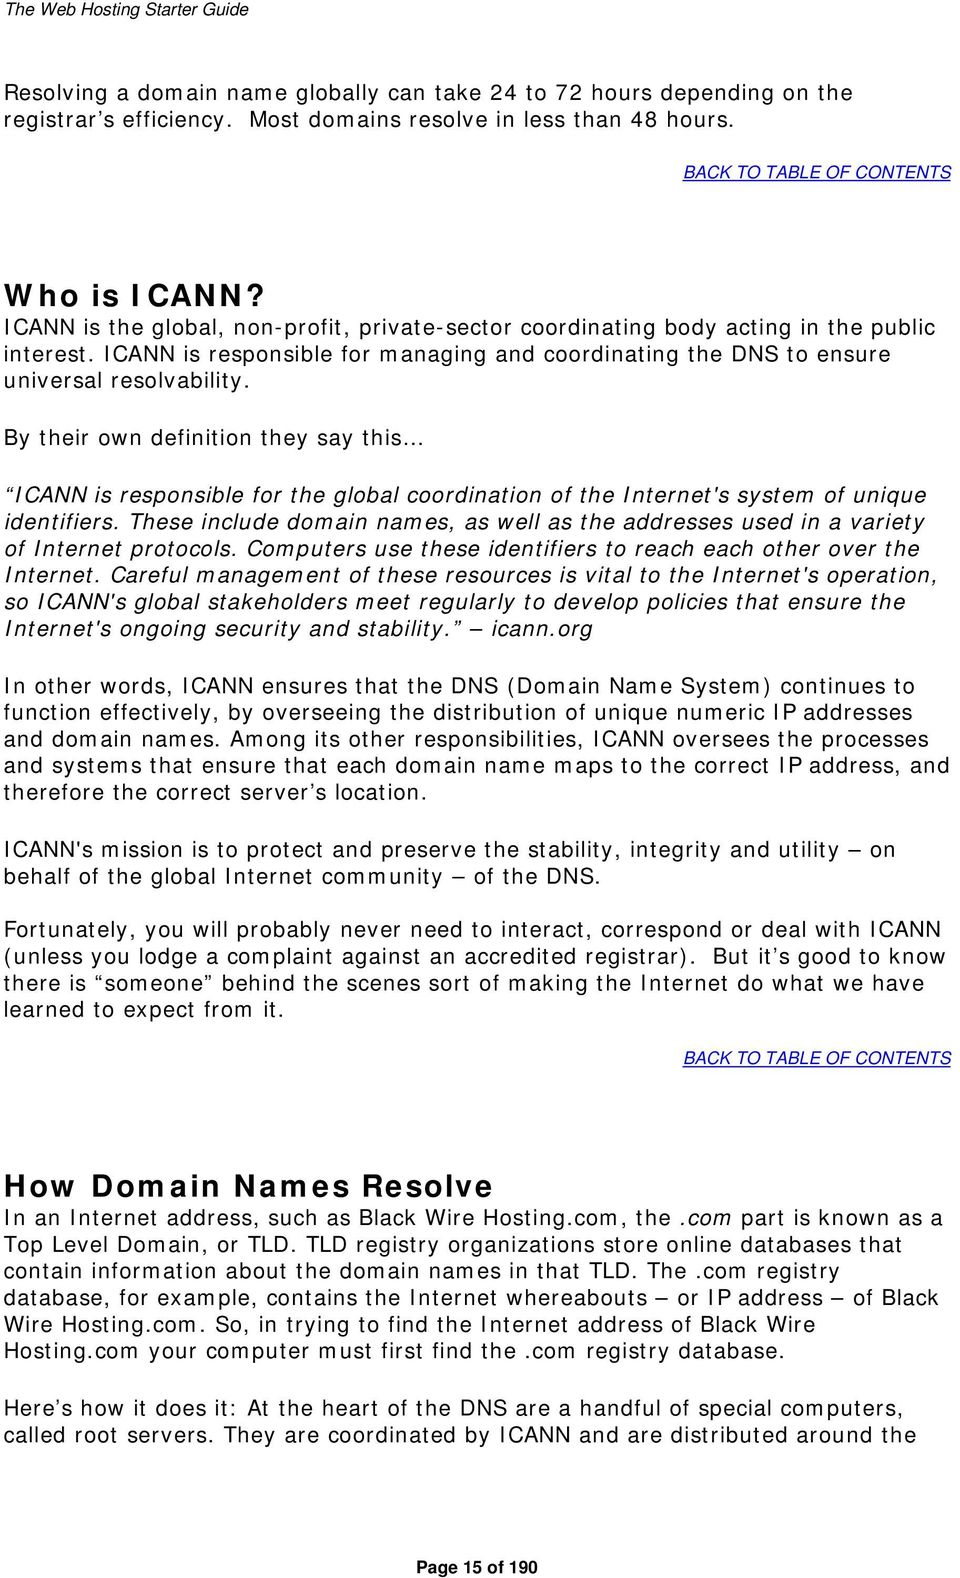 By their own definition they say this ICANN is responsible for the global coordination of the Internet's system of unique identifiers.